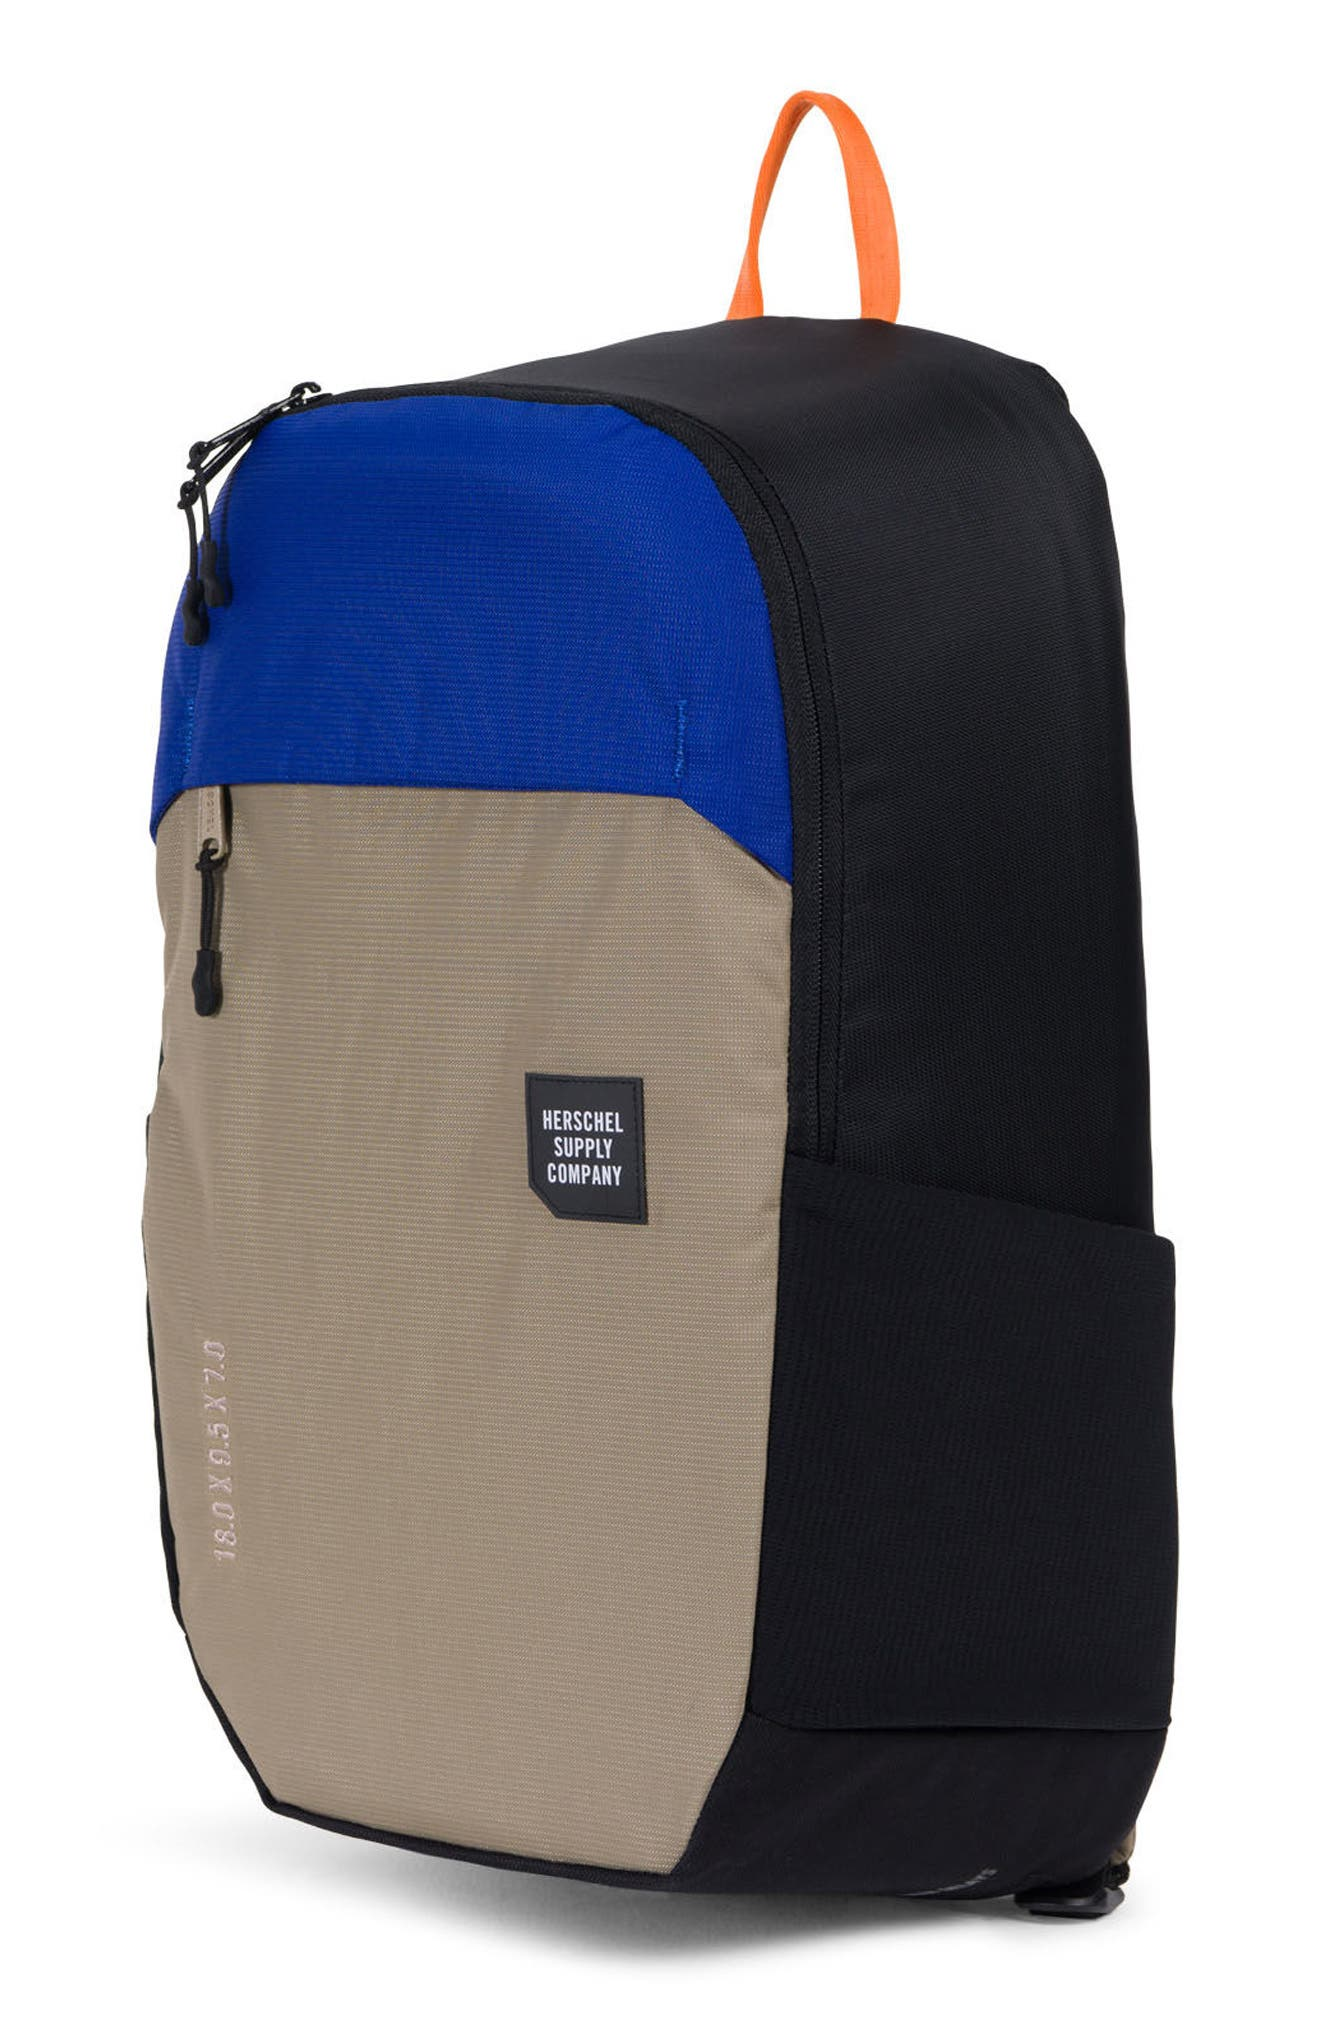 Mammoth Trail Collection Backpack,                             Alternate thumbnail 4, color,                             253